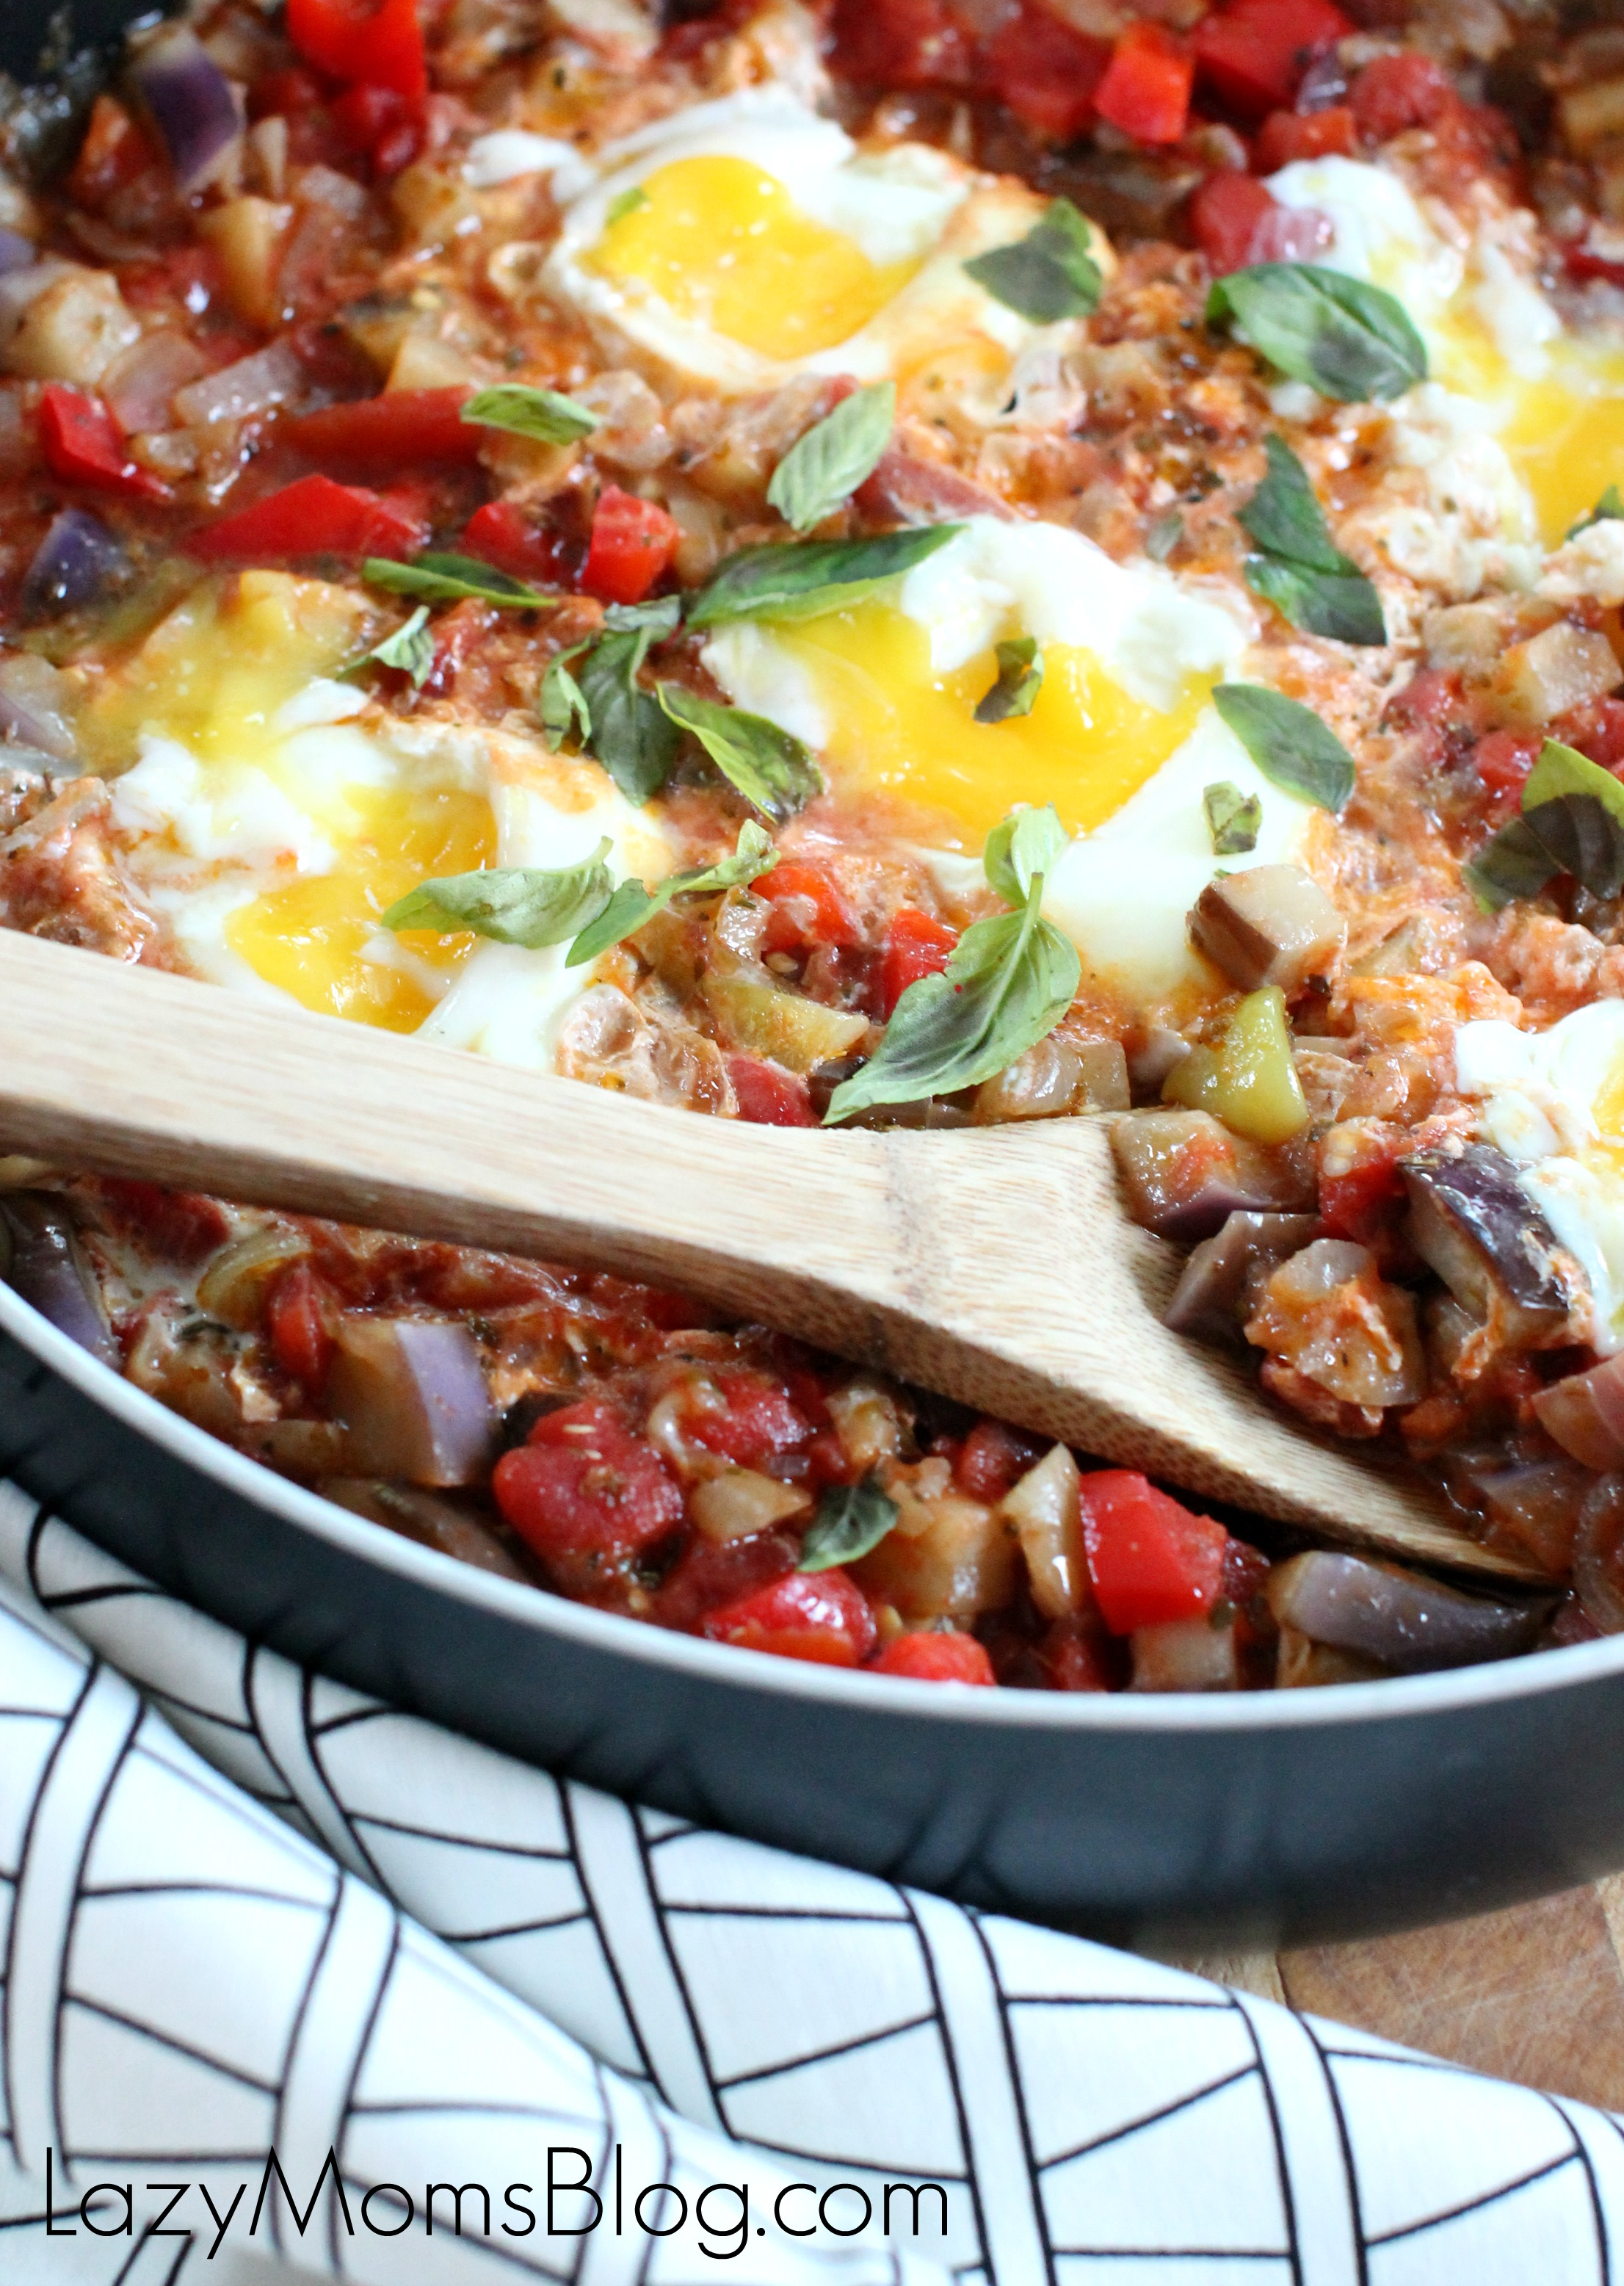 This hearty shakshuka is a perfect vegetarian meal for these cold winter days!